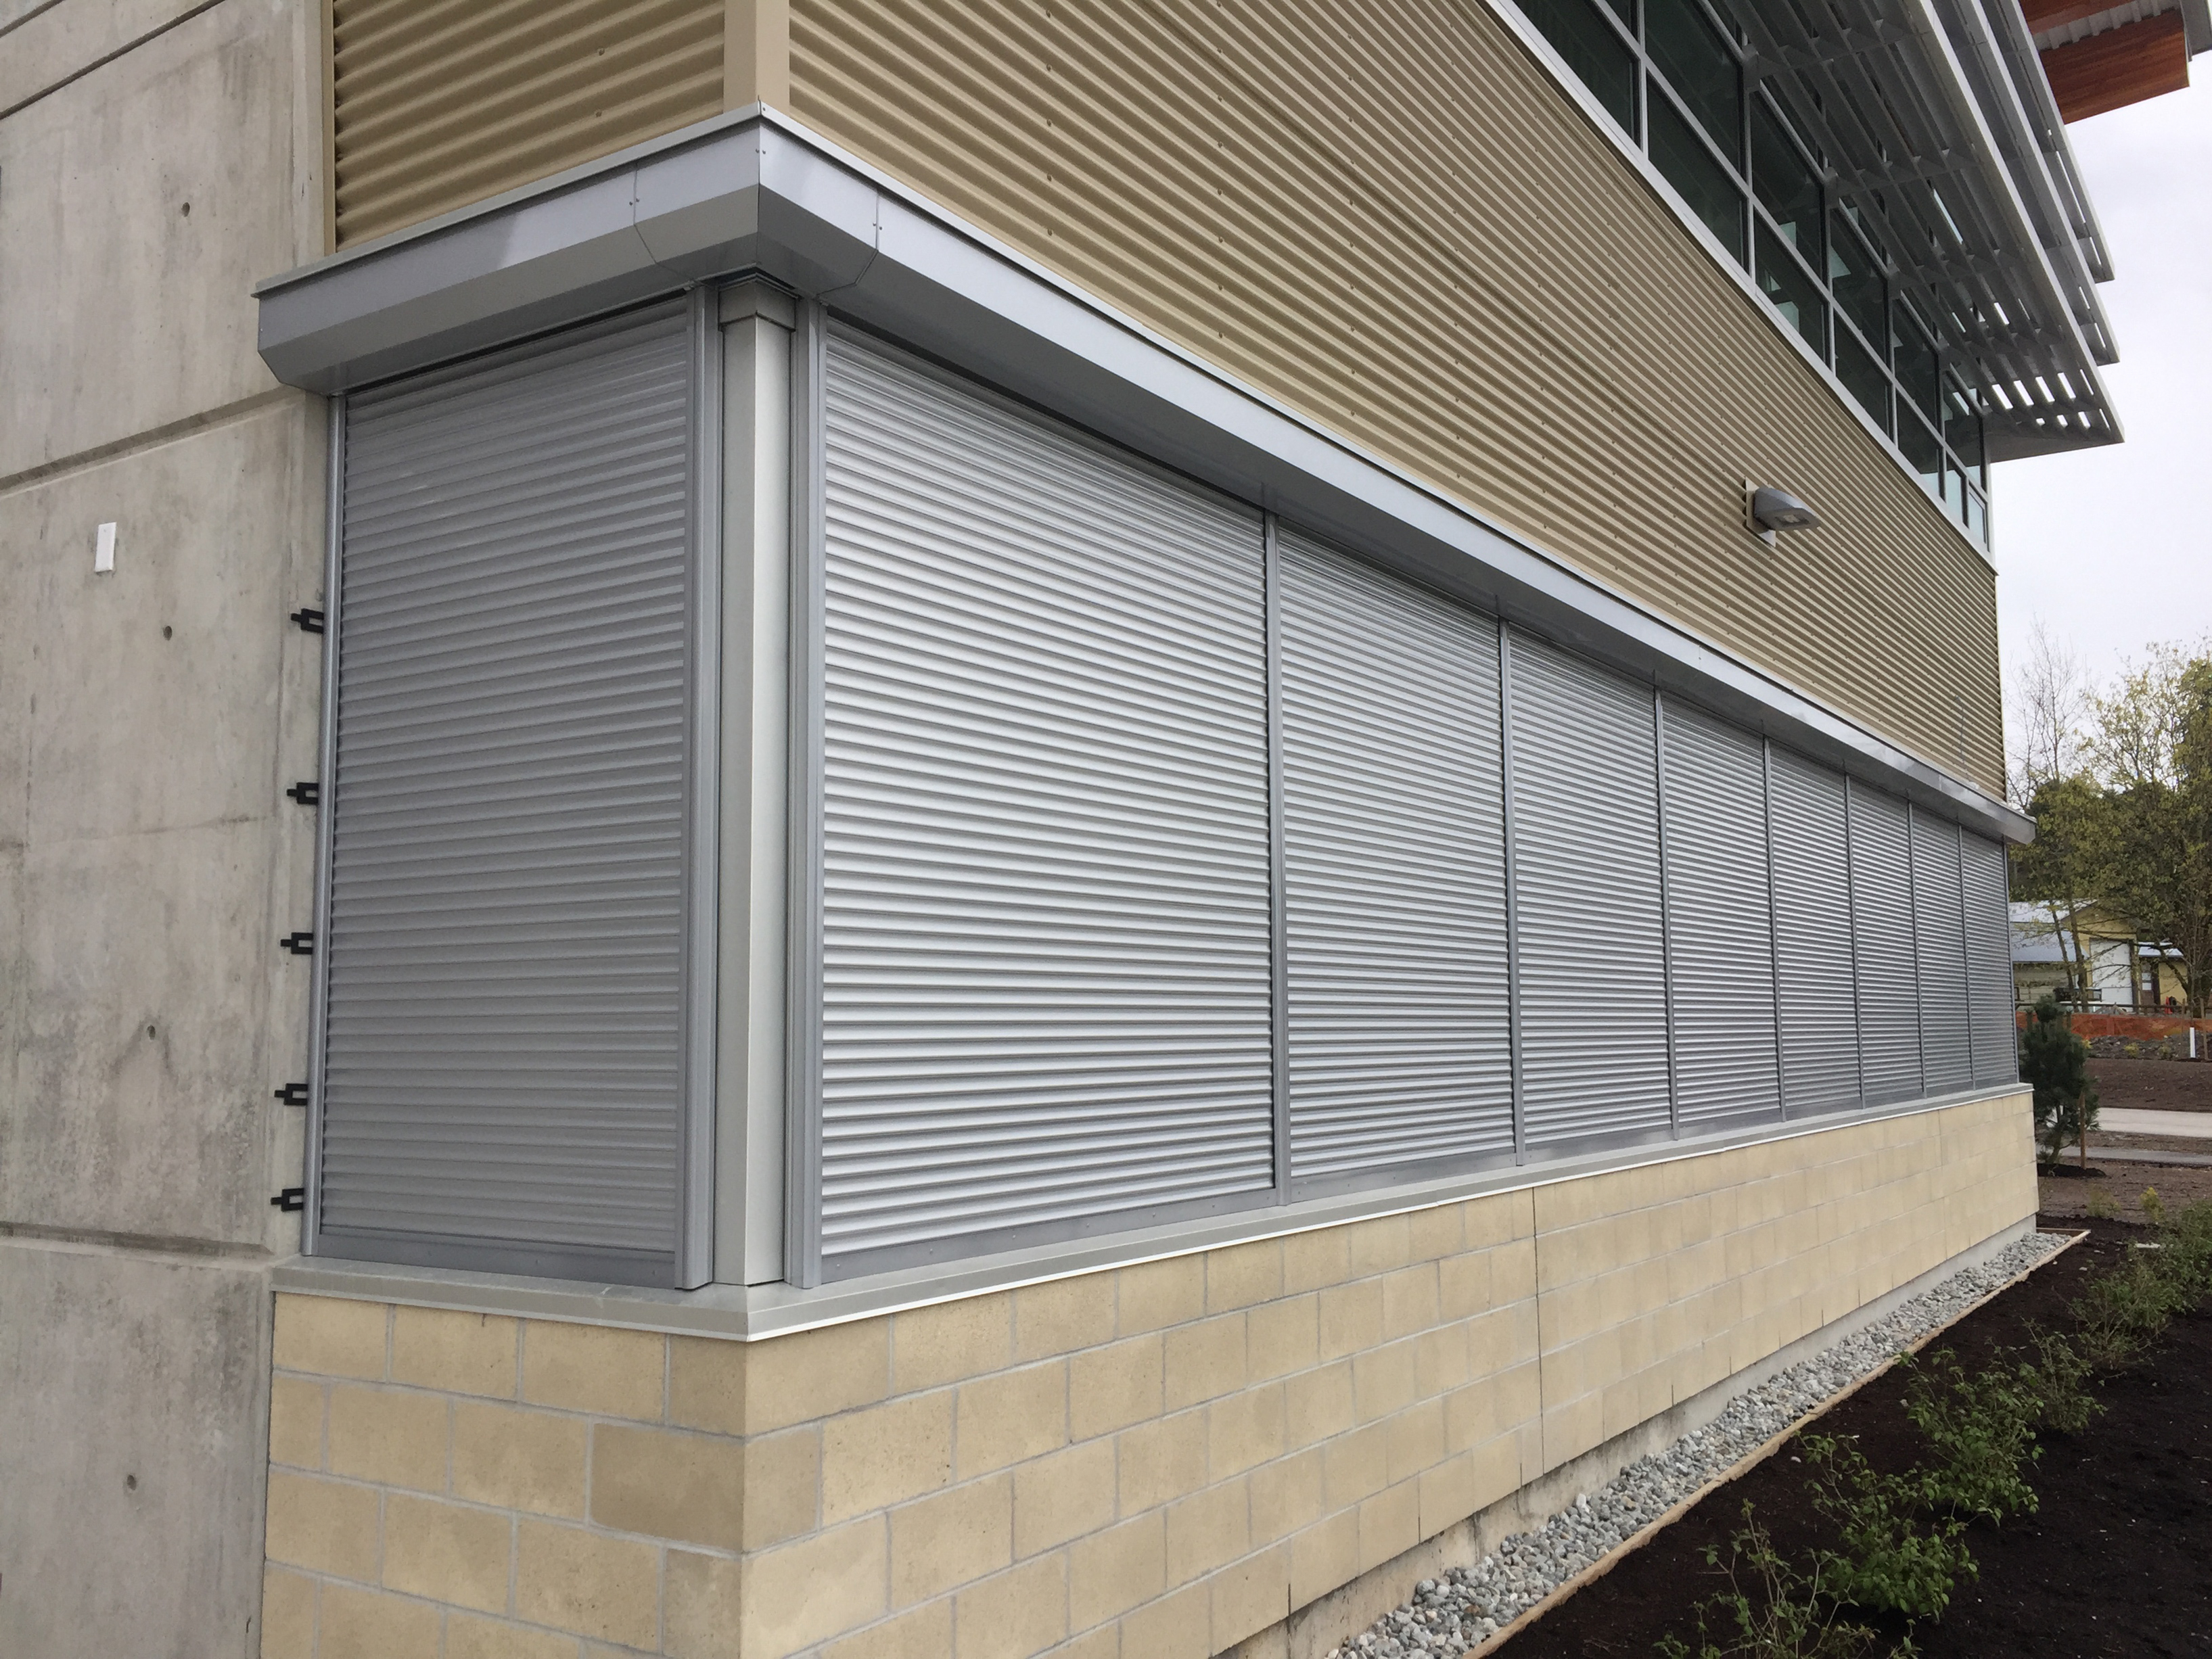 Customized security shutters